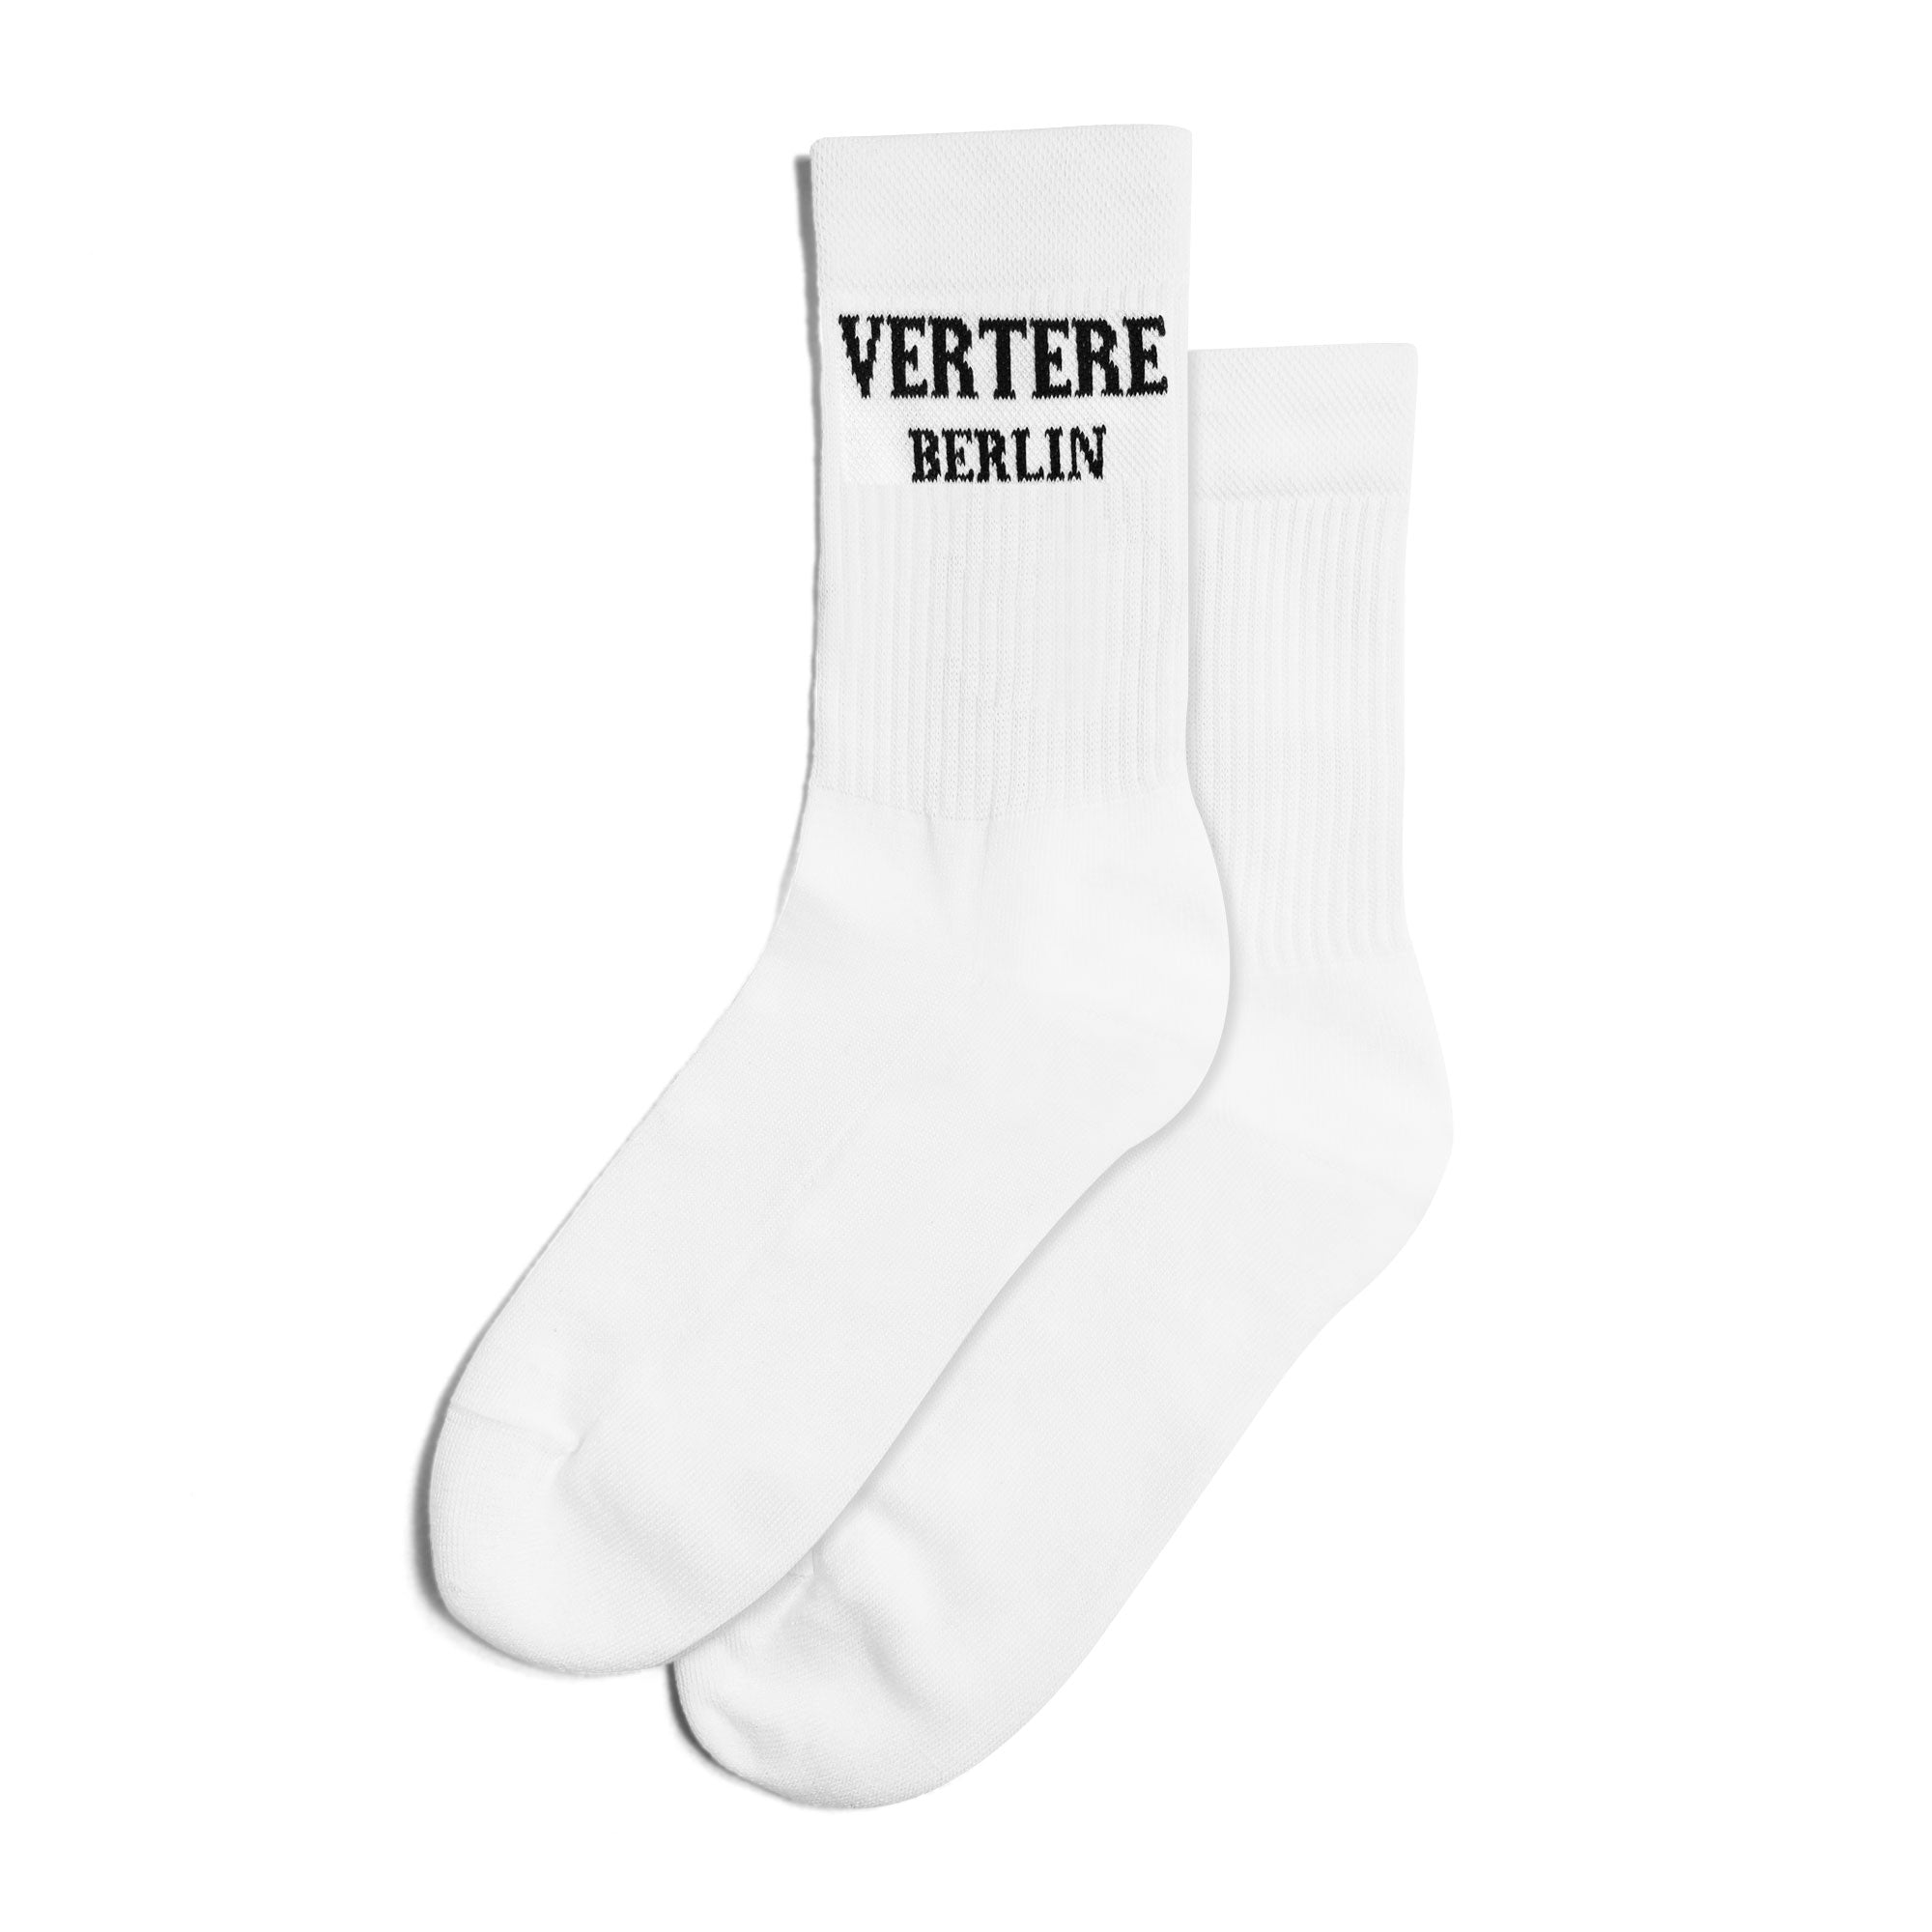 3-PACK TENNIS SOCKS - WHITE